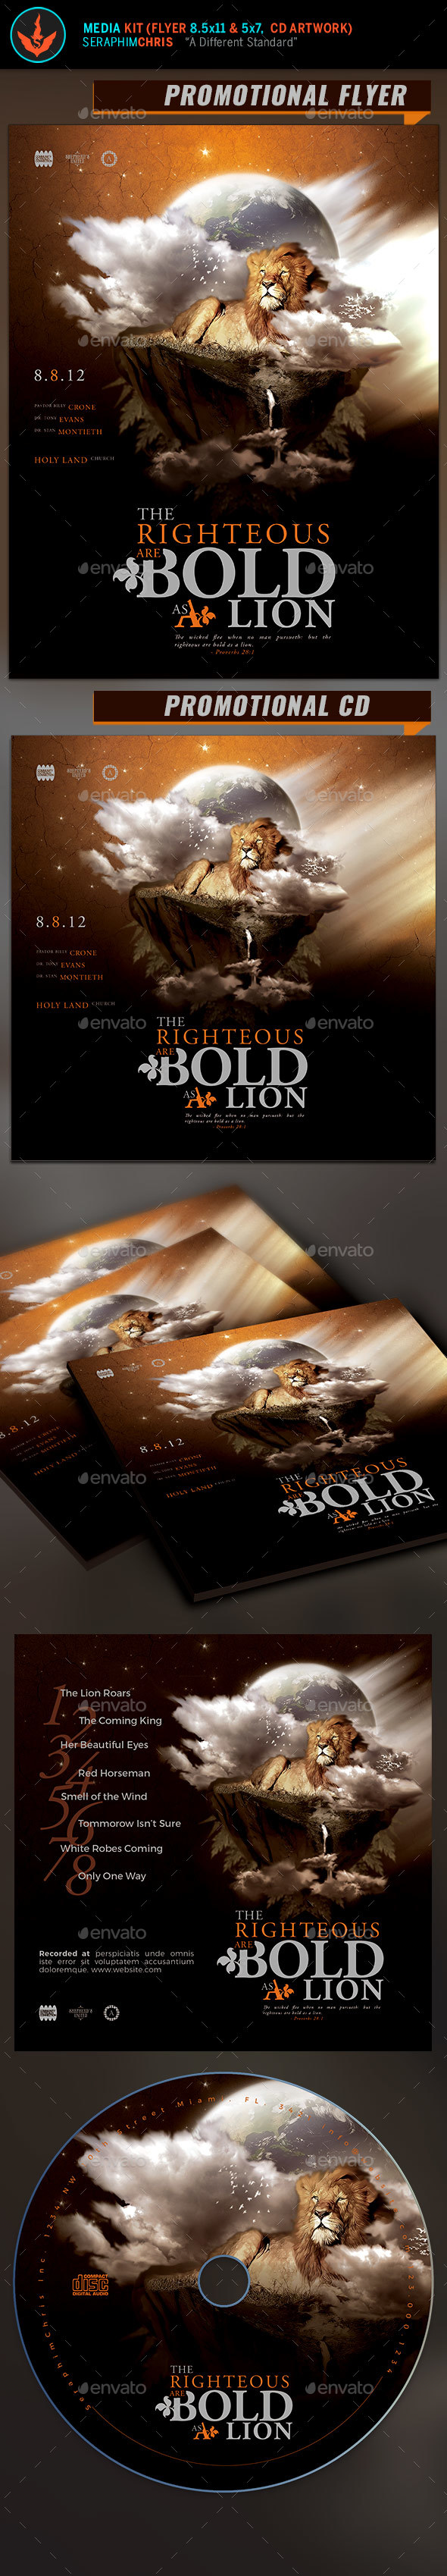 The Righteous Full Page Flyer and CD Artwork Template - Church Flyers